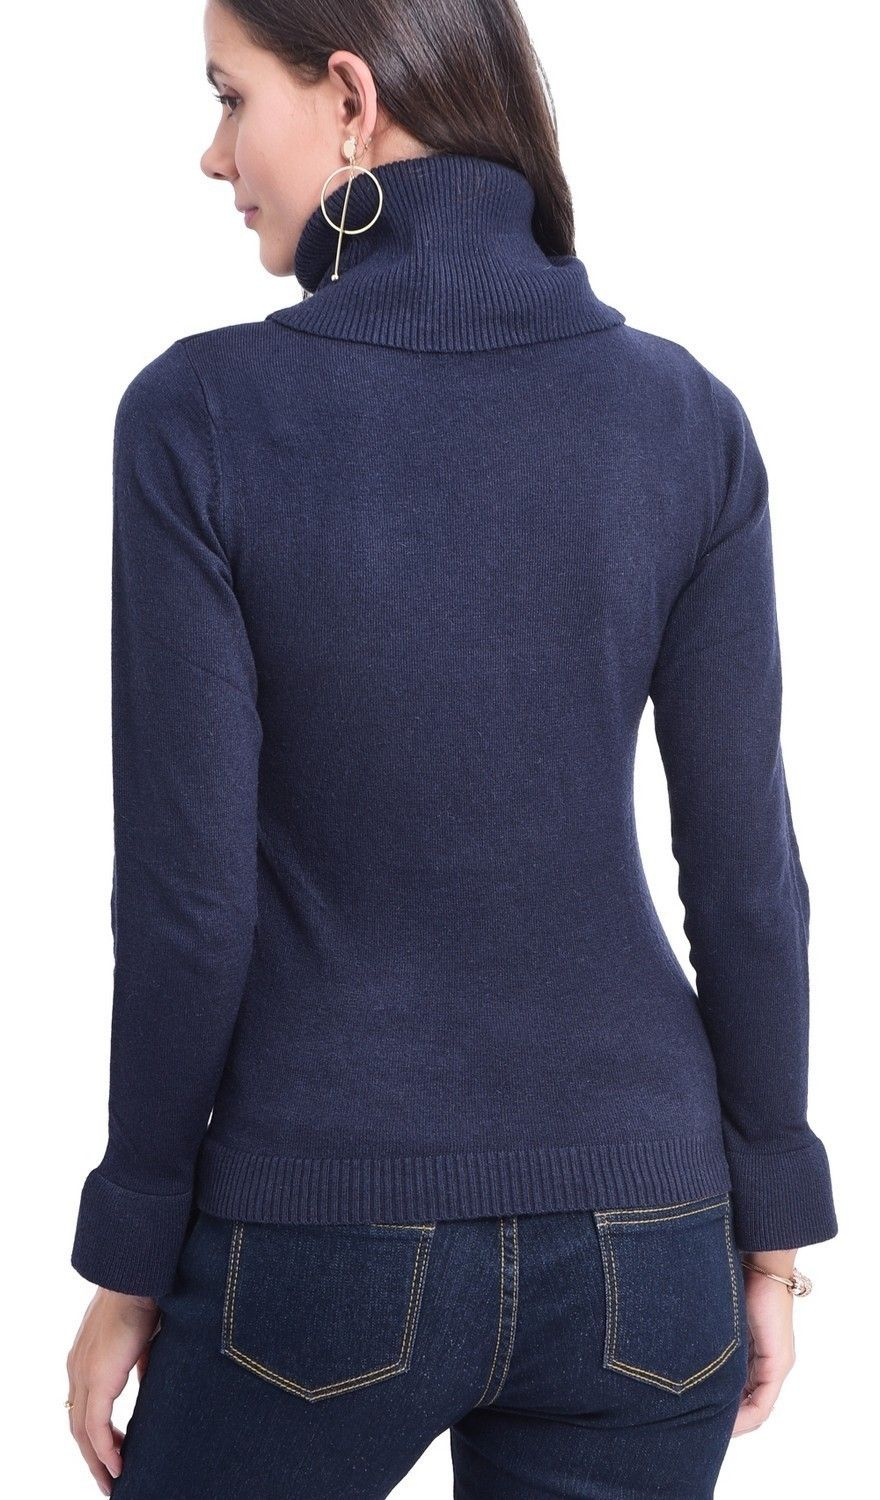 C&JO Roll Neck Ruffle Sleeve Sweater in Navy